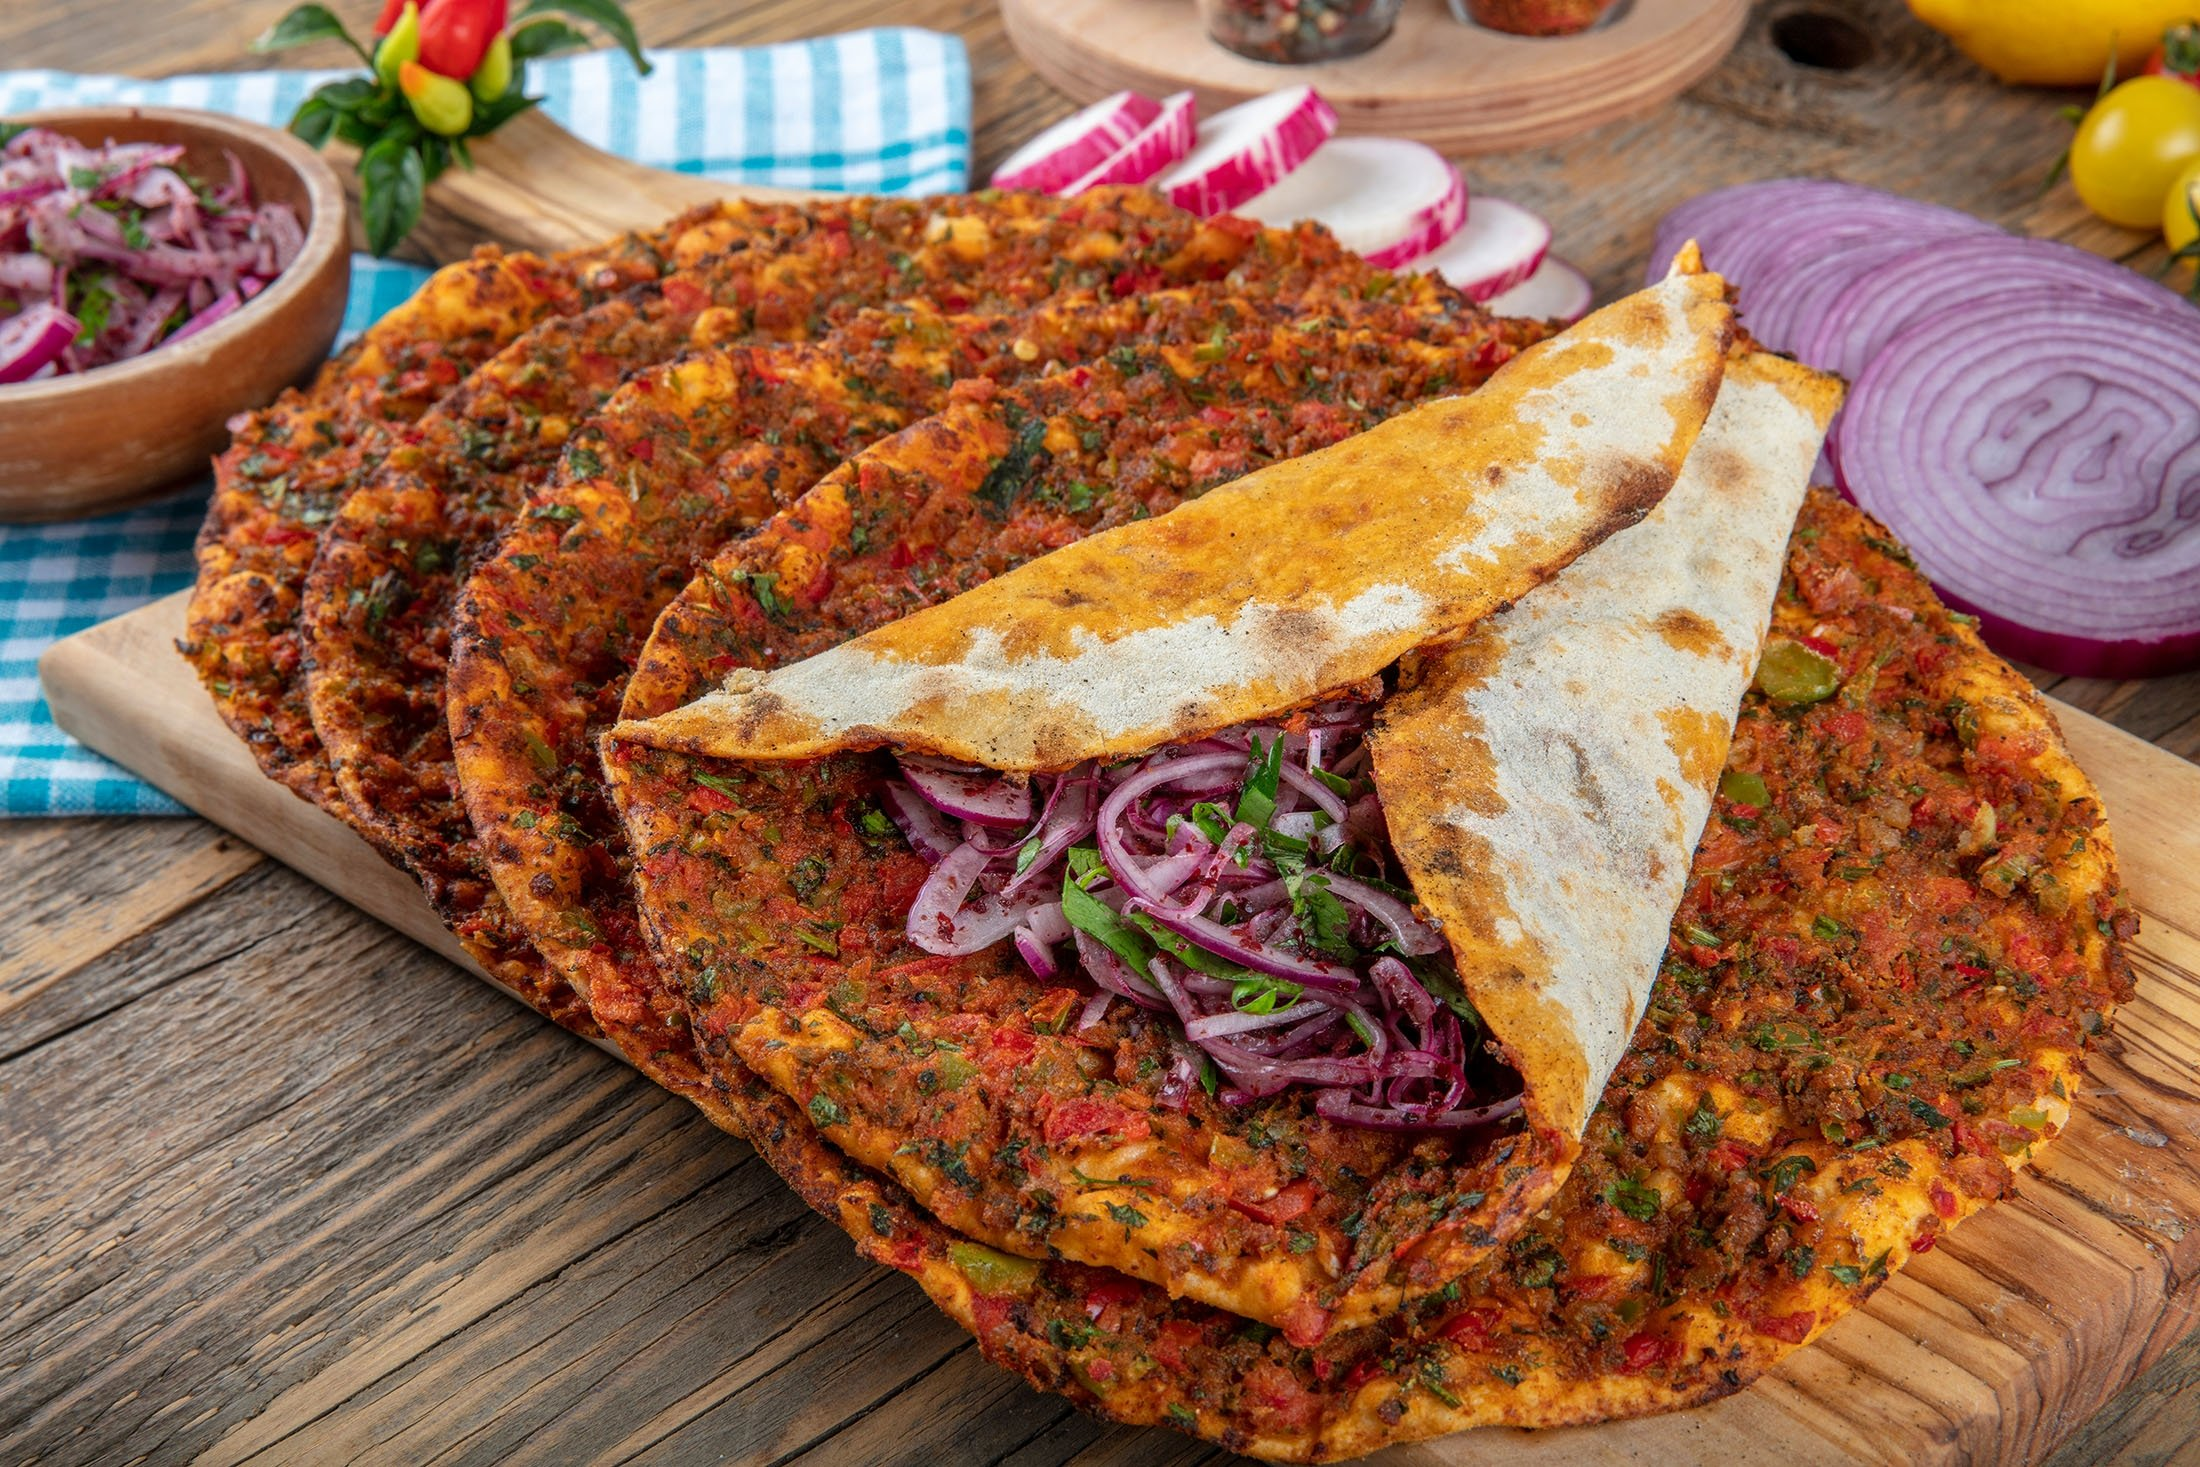 Lahmacun is often served with onions, parsley, lemon and sumac. (Shutterstock Photo)